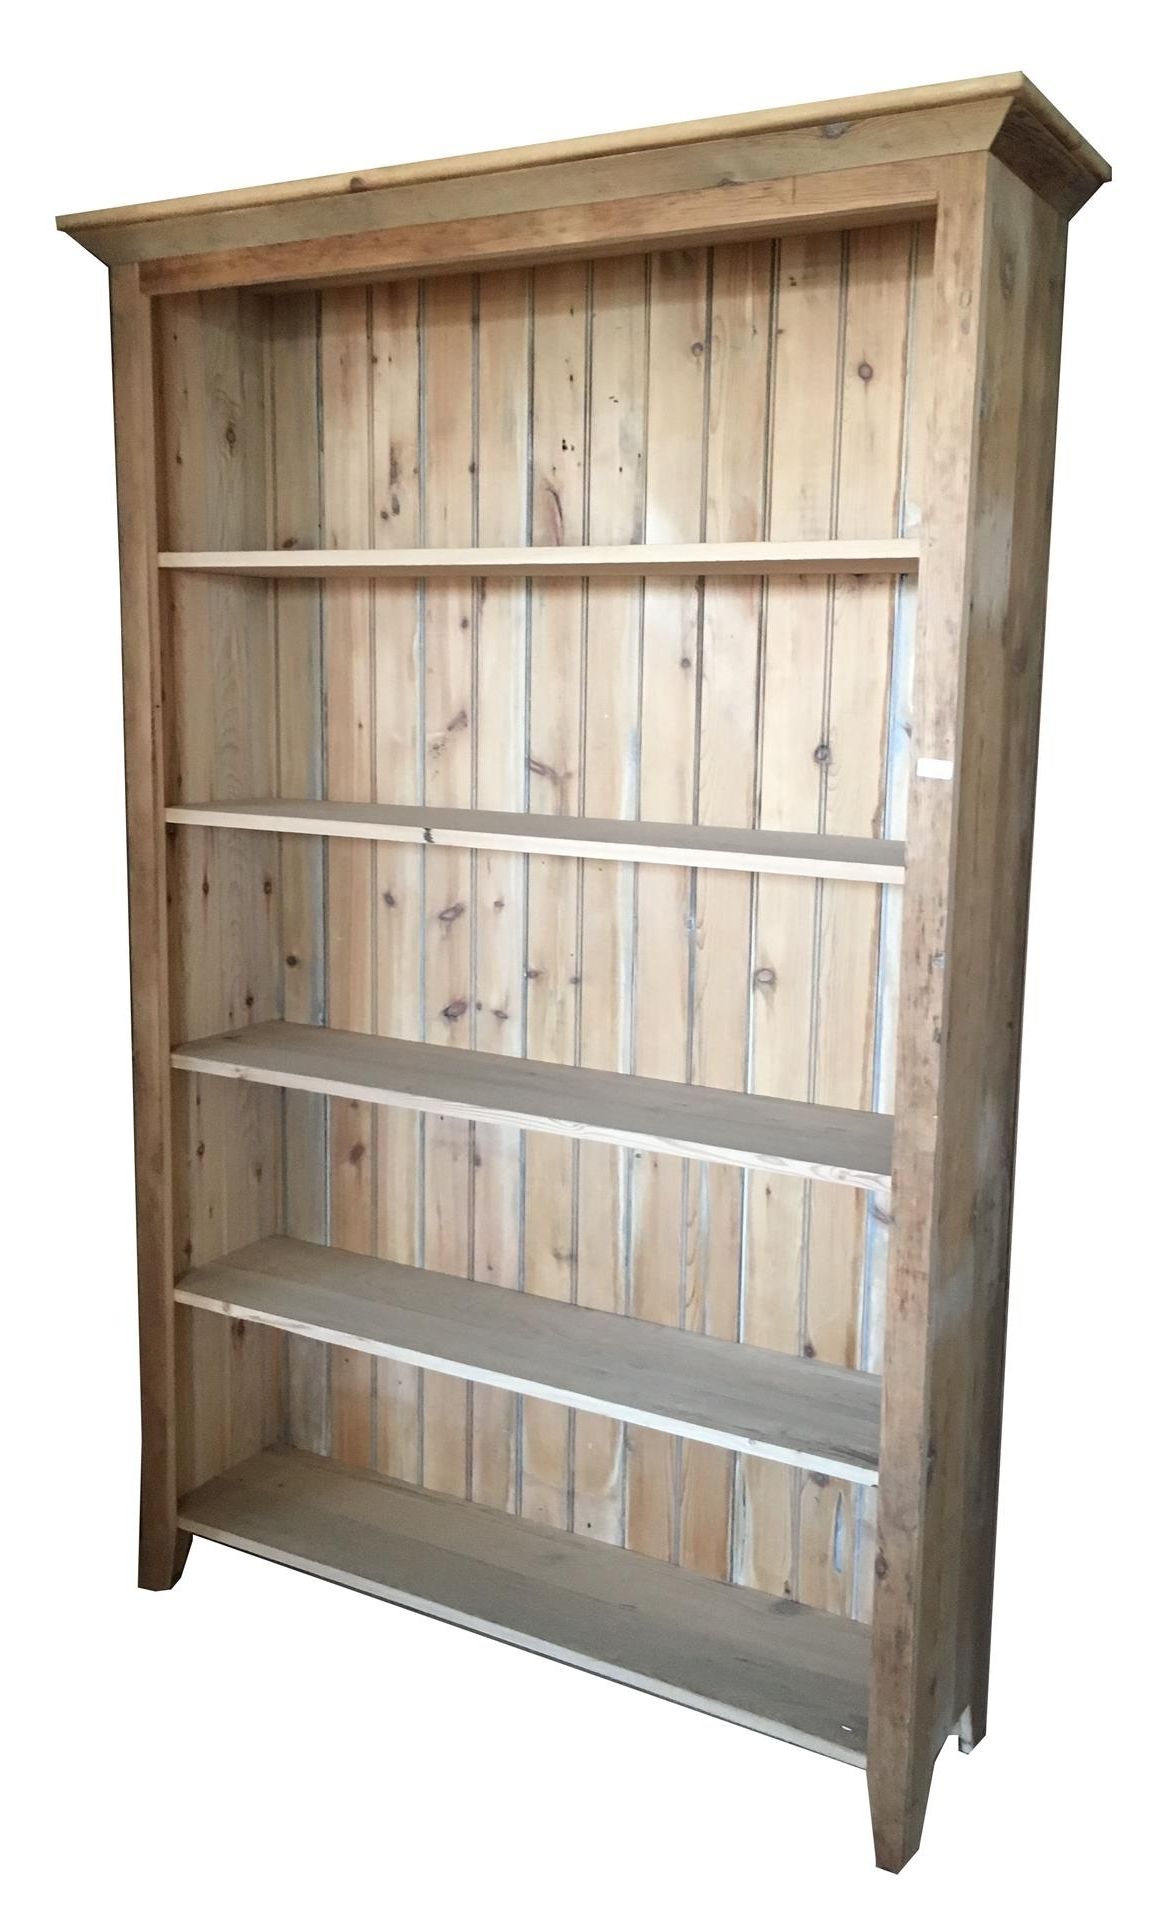 Solid Wood Bookcases At Dutchcrafters In Well Known Large Wooden Bookcases (View 14 of 15)